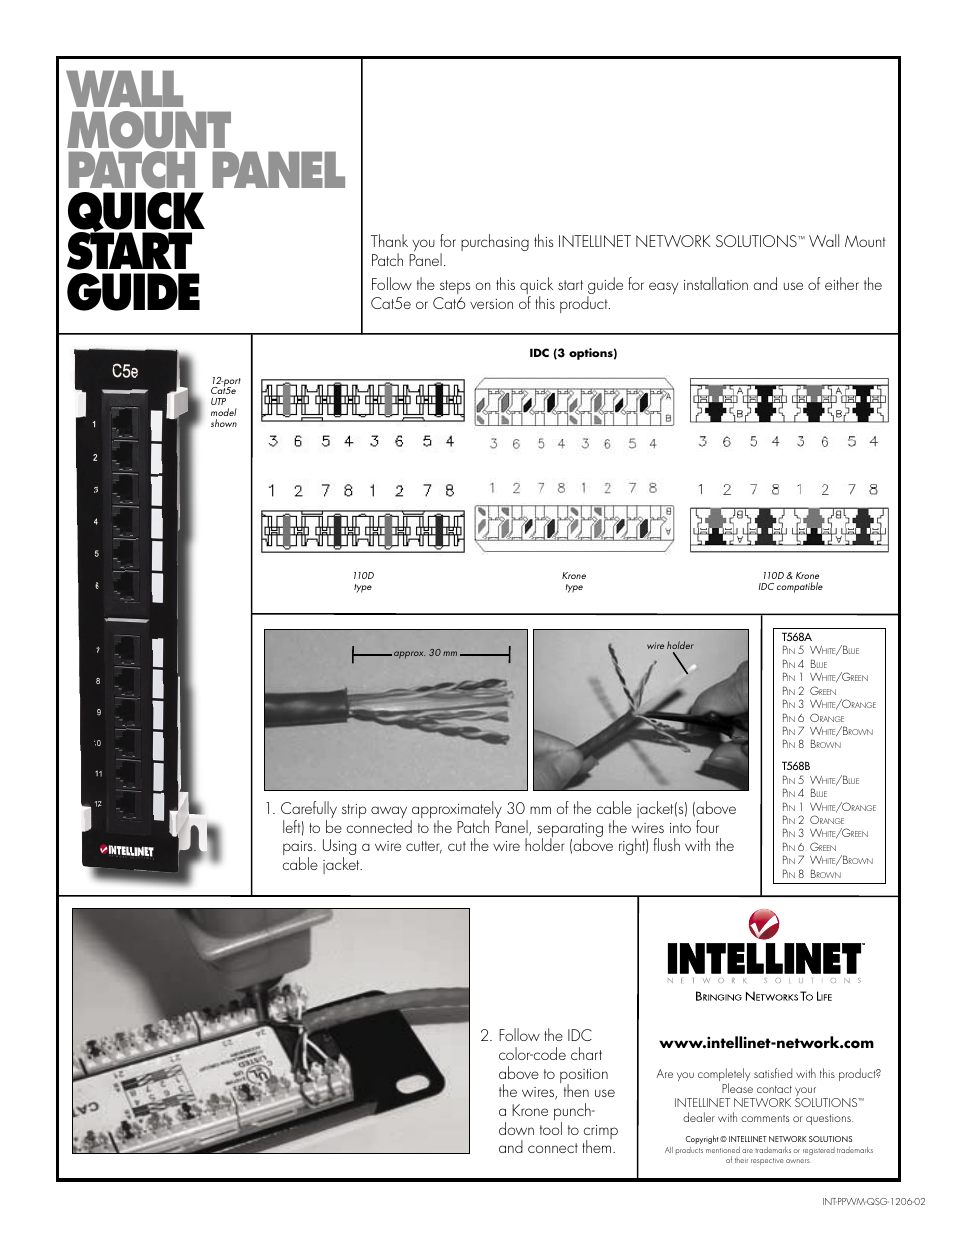 Contemporary Patch Panel Wiring Diagram Photos - The Wire - magnox.info